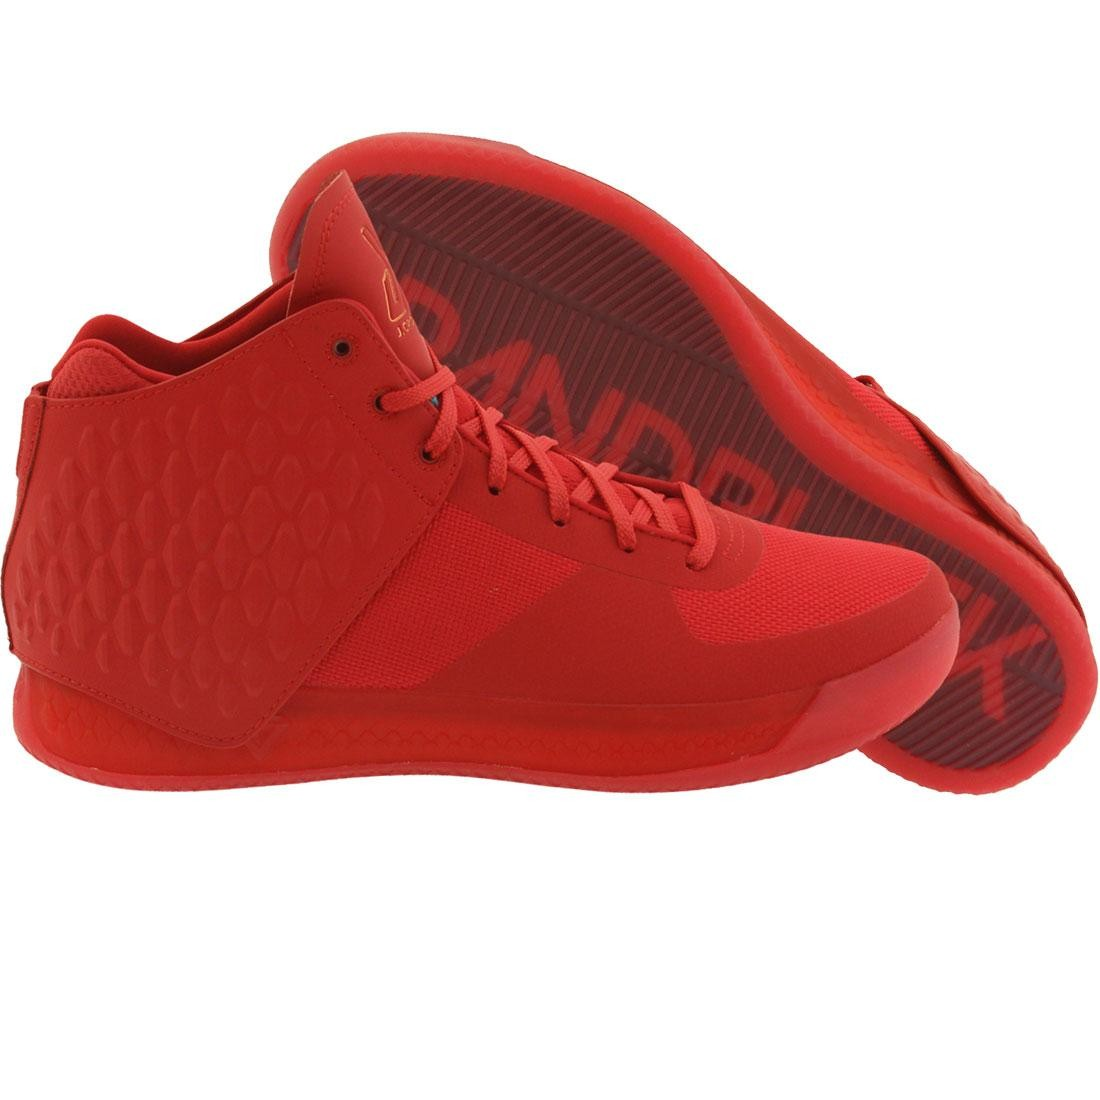 【海外限定】靴 スニーカー 【 BRANDBLACK MEN J CROSSOVER 3 RED 】